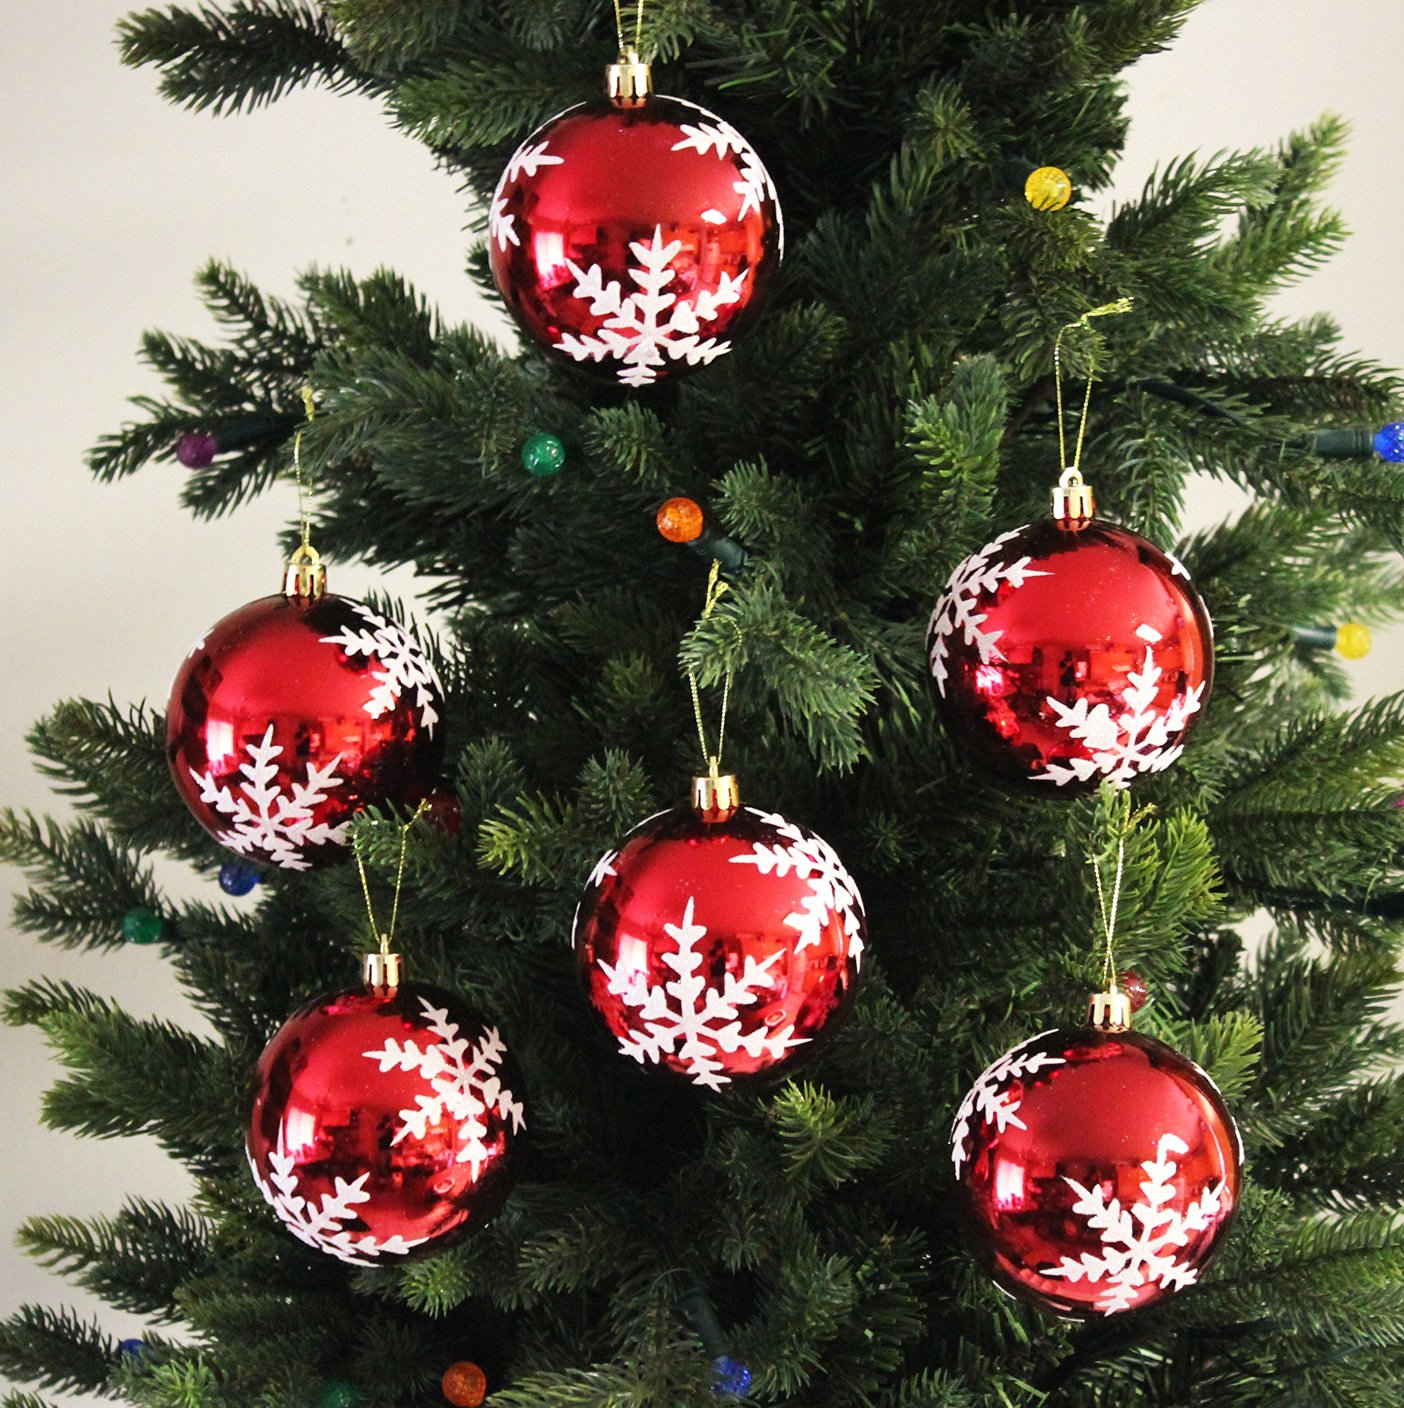 snowflake shatterproof 236 60mm christmas ball ornaments decorations set of 6 with storage - Christmas Decorations Wholesale